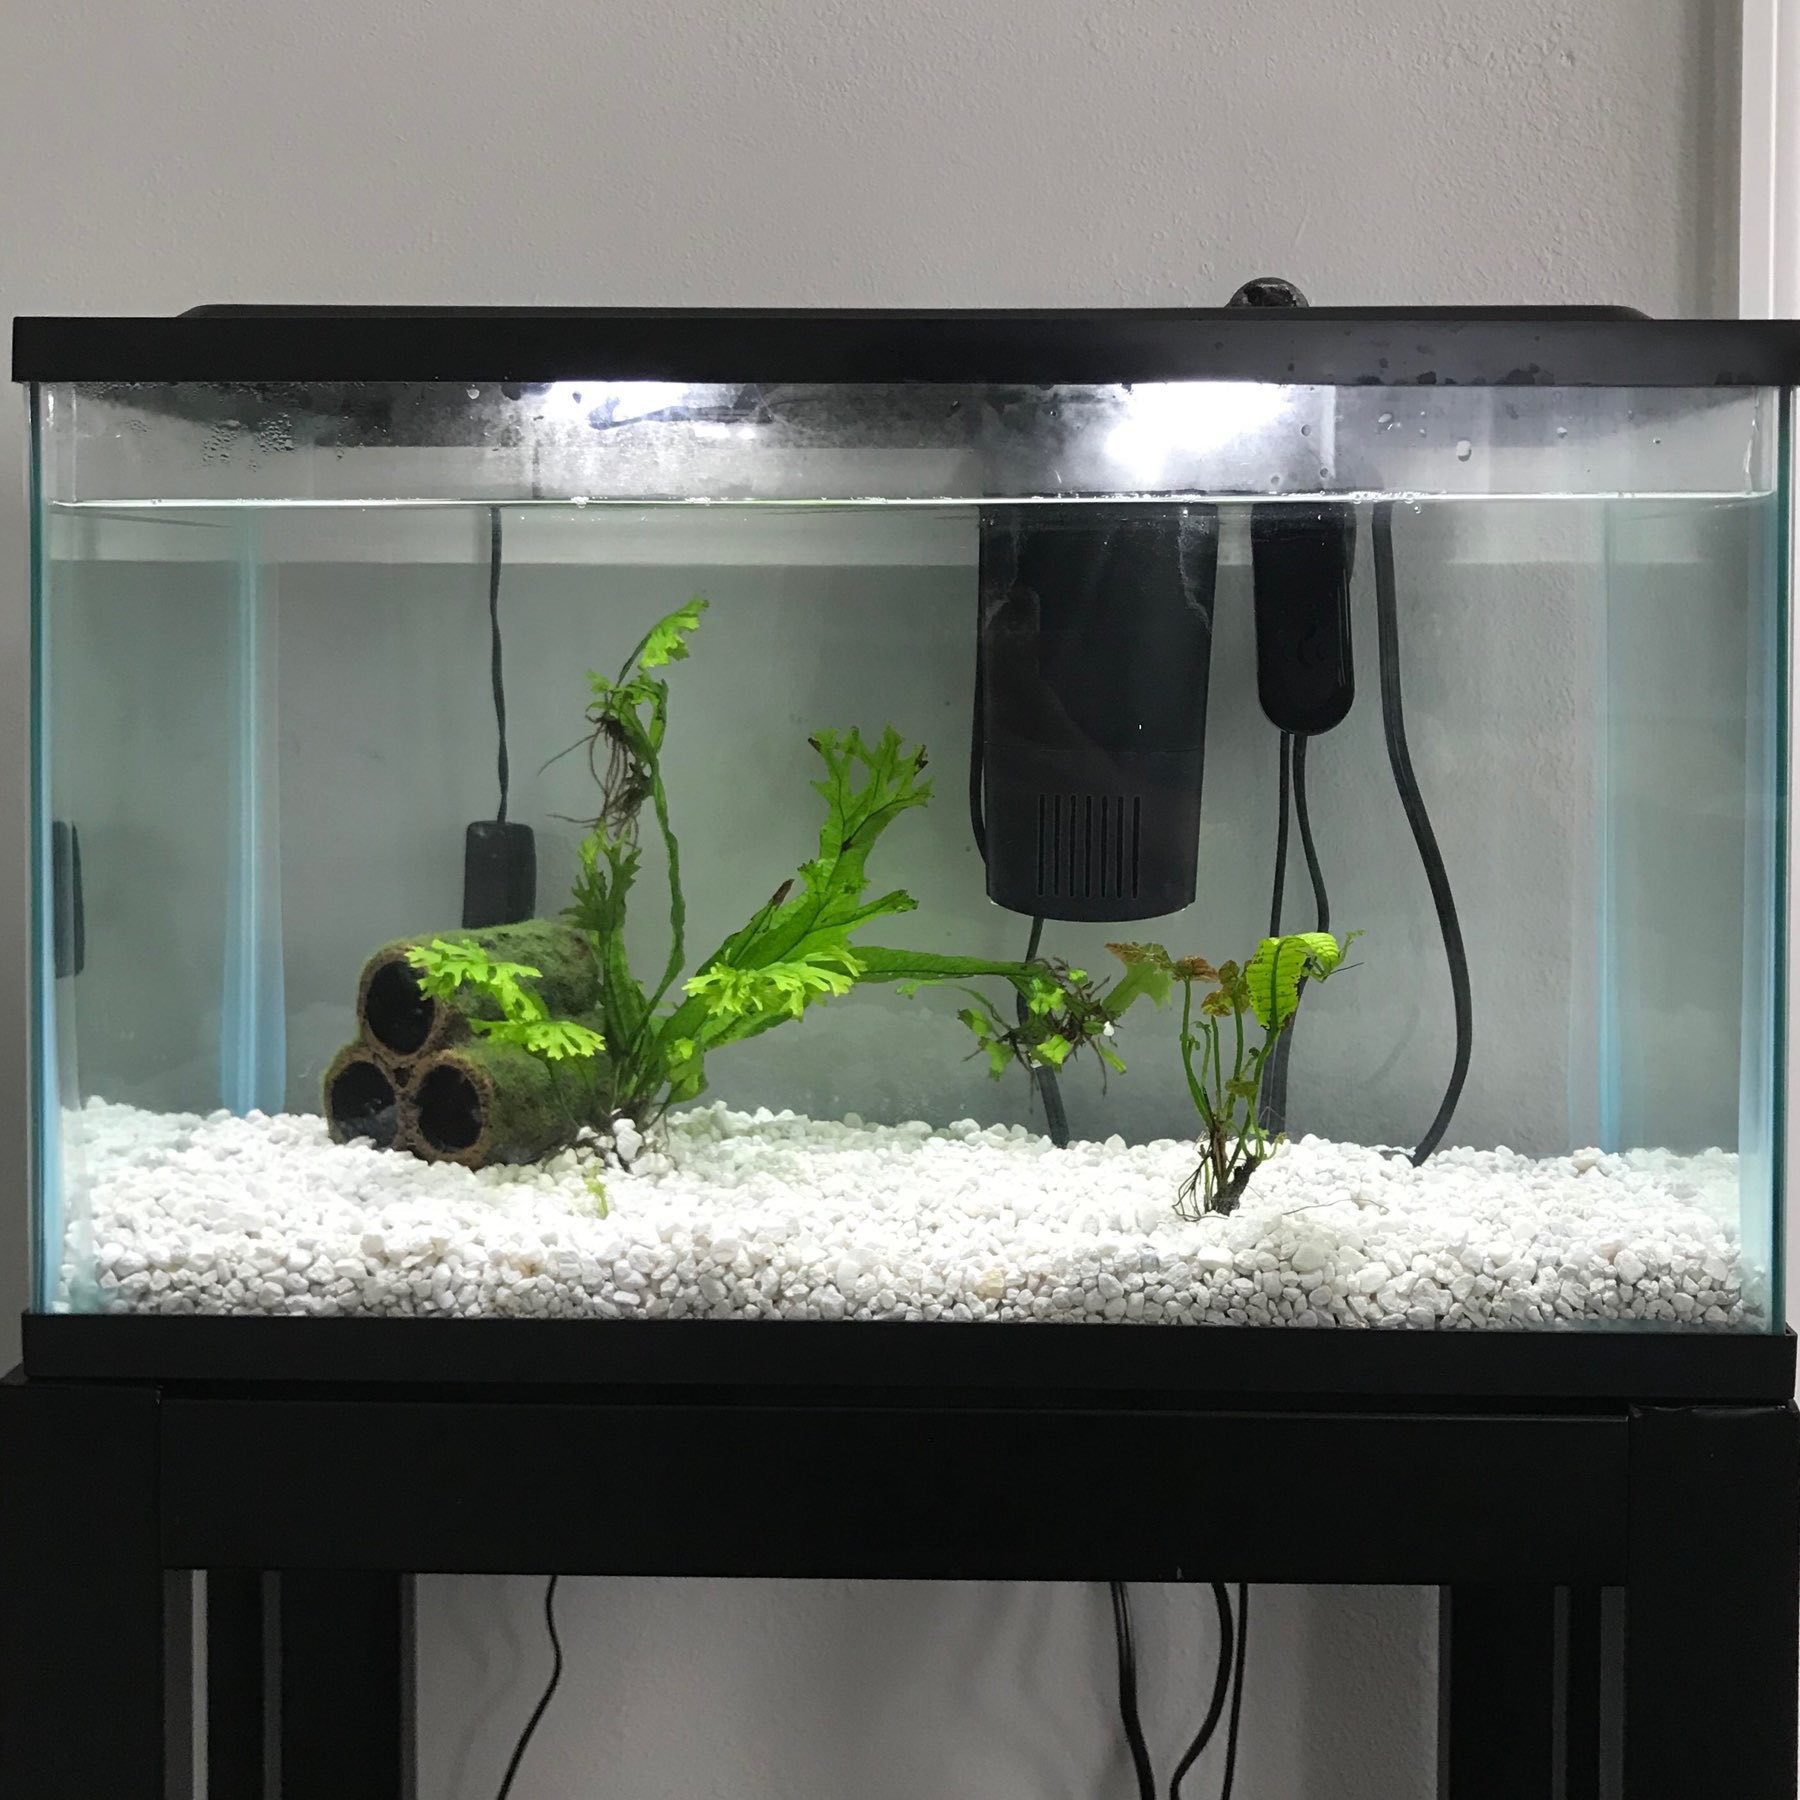 aquarium tank with two plants and a mossy log inside